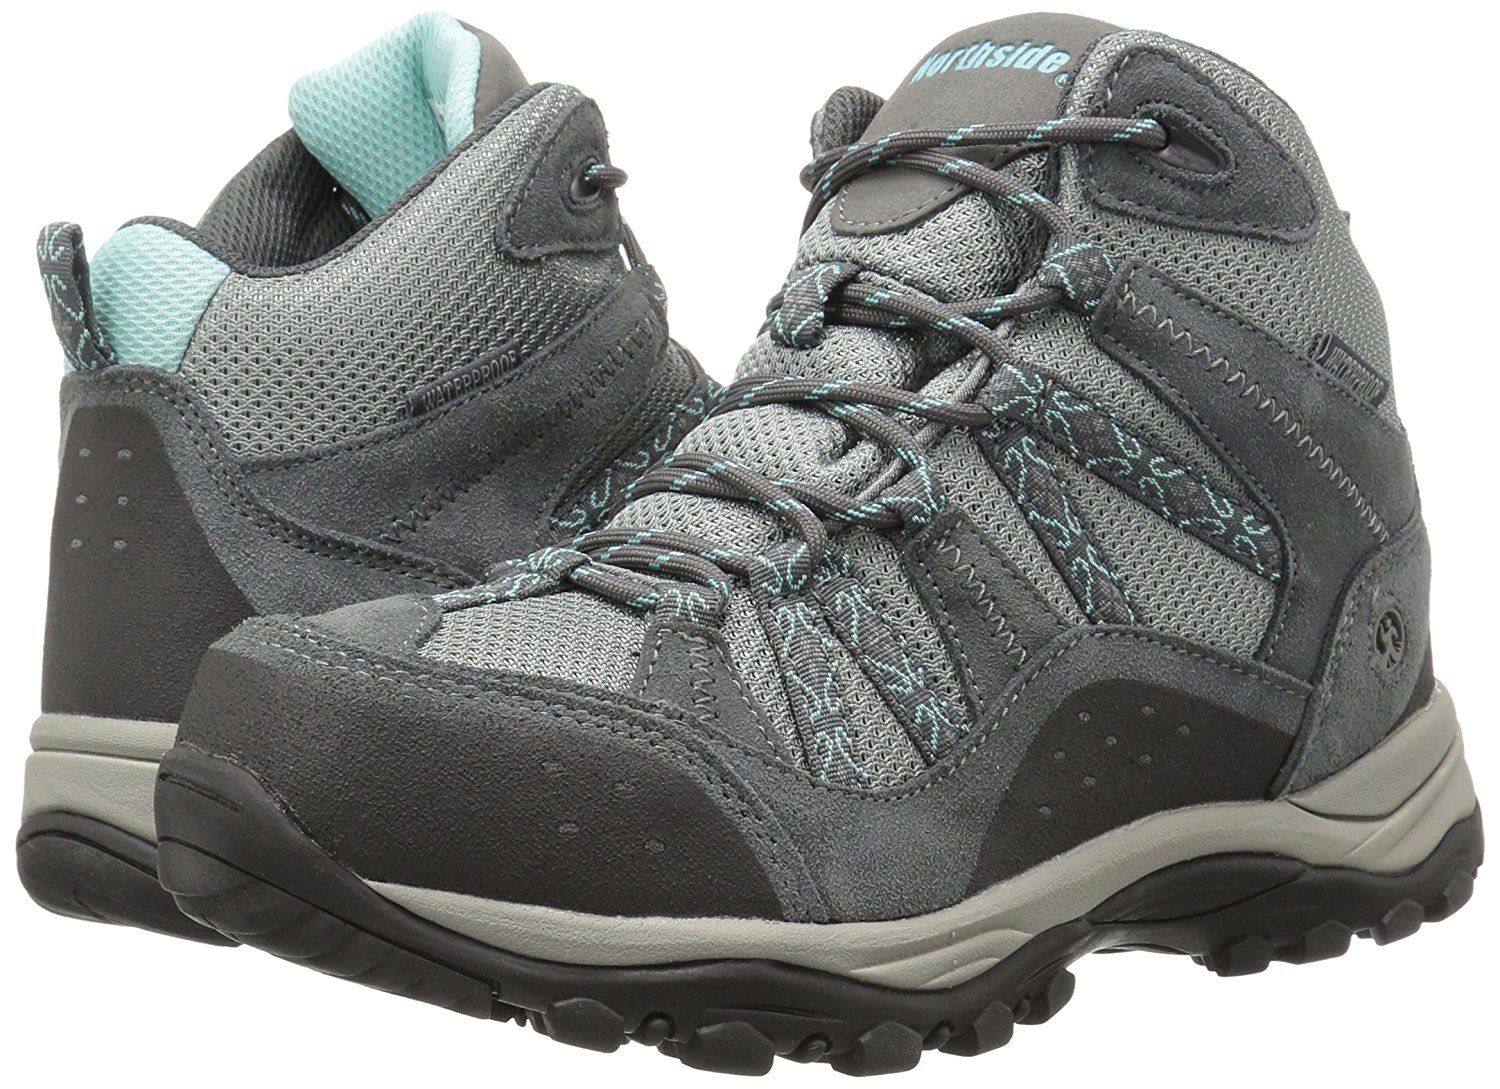 Northside Damens's Freemont Freemont Freemont Hiking Boot  Learn more by visiting the ... 6d7576